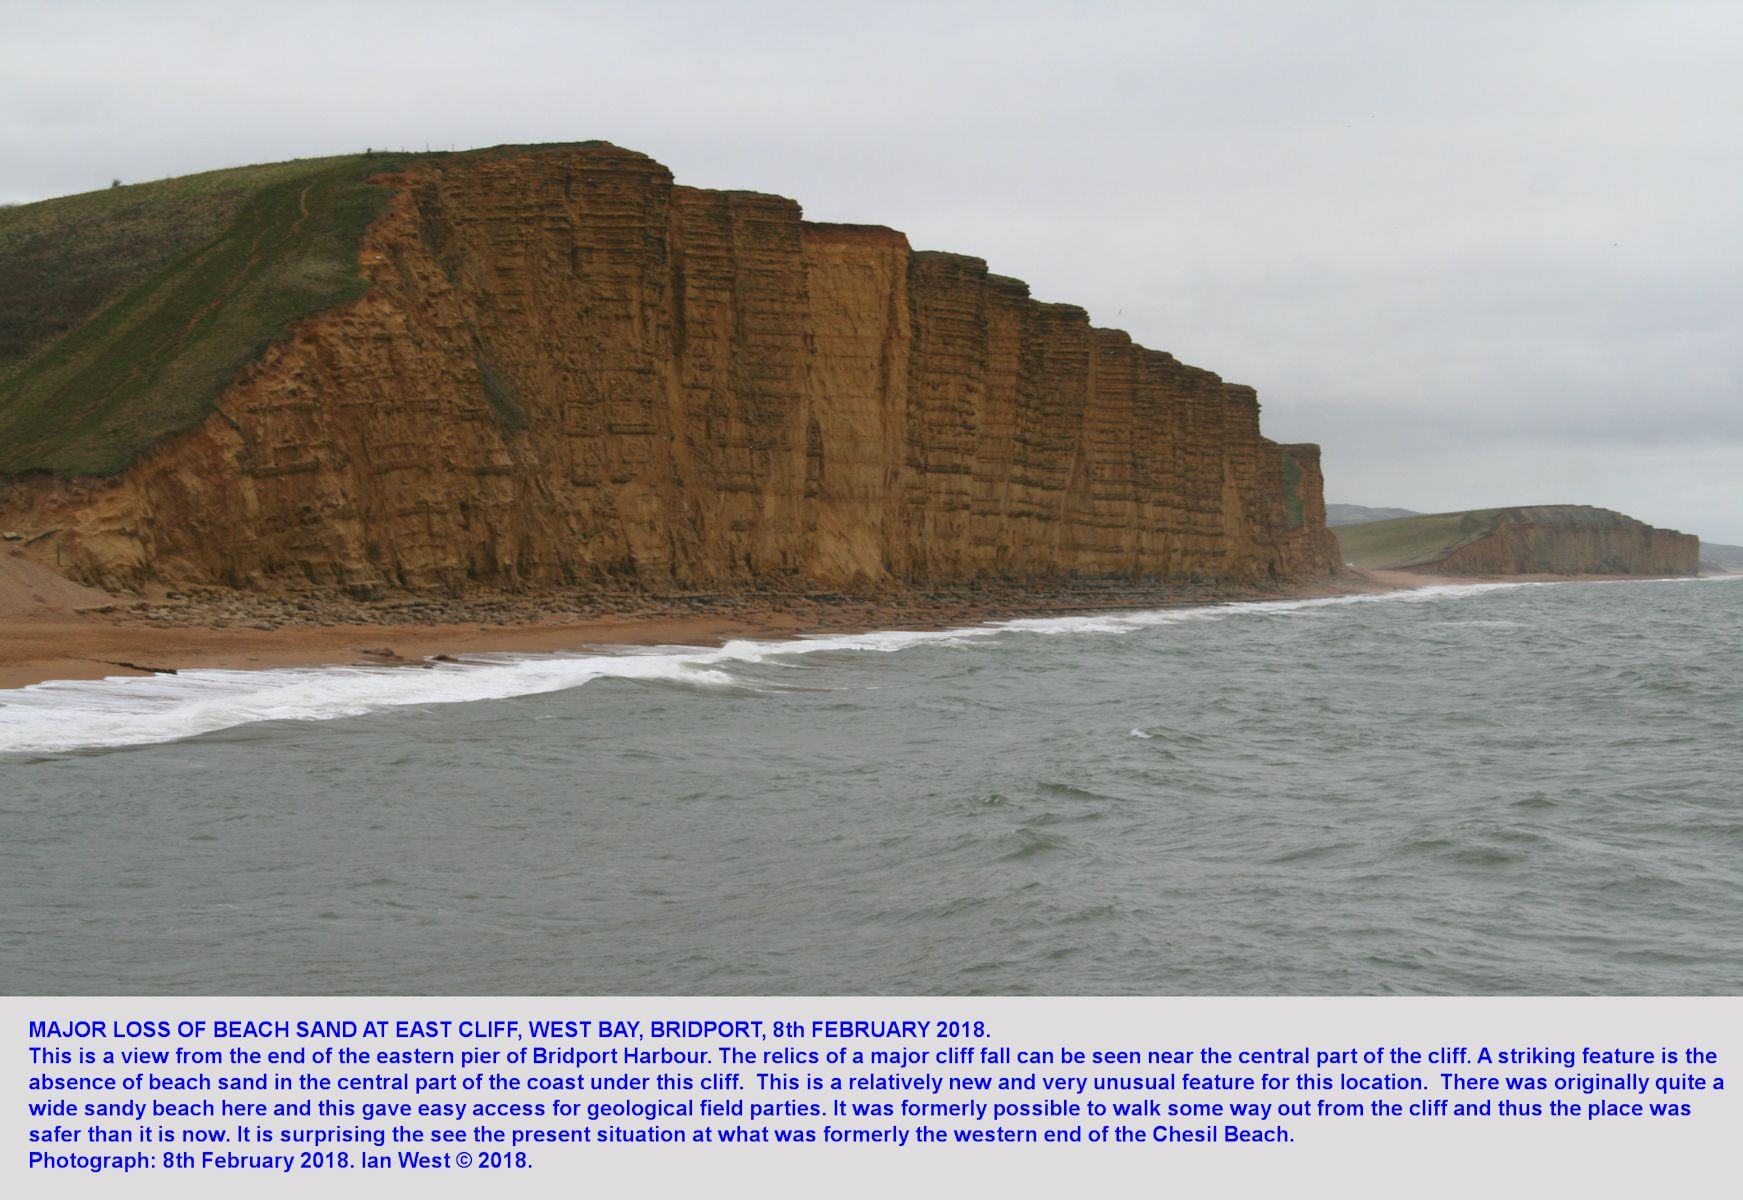 View from pier of East Cliff, West Bay, Bridport, Dorset, with an unusually  narrow and eroded beach adjacent to vertical cliffs of Bridport Sand Formation, 8th February, 2018